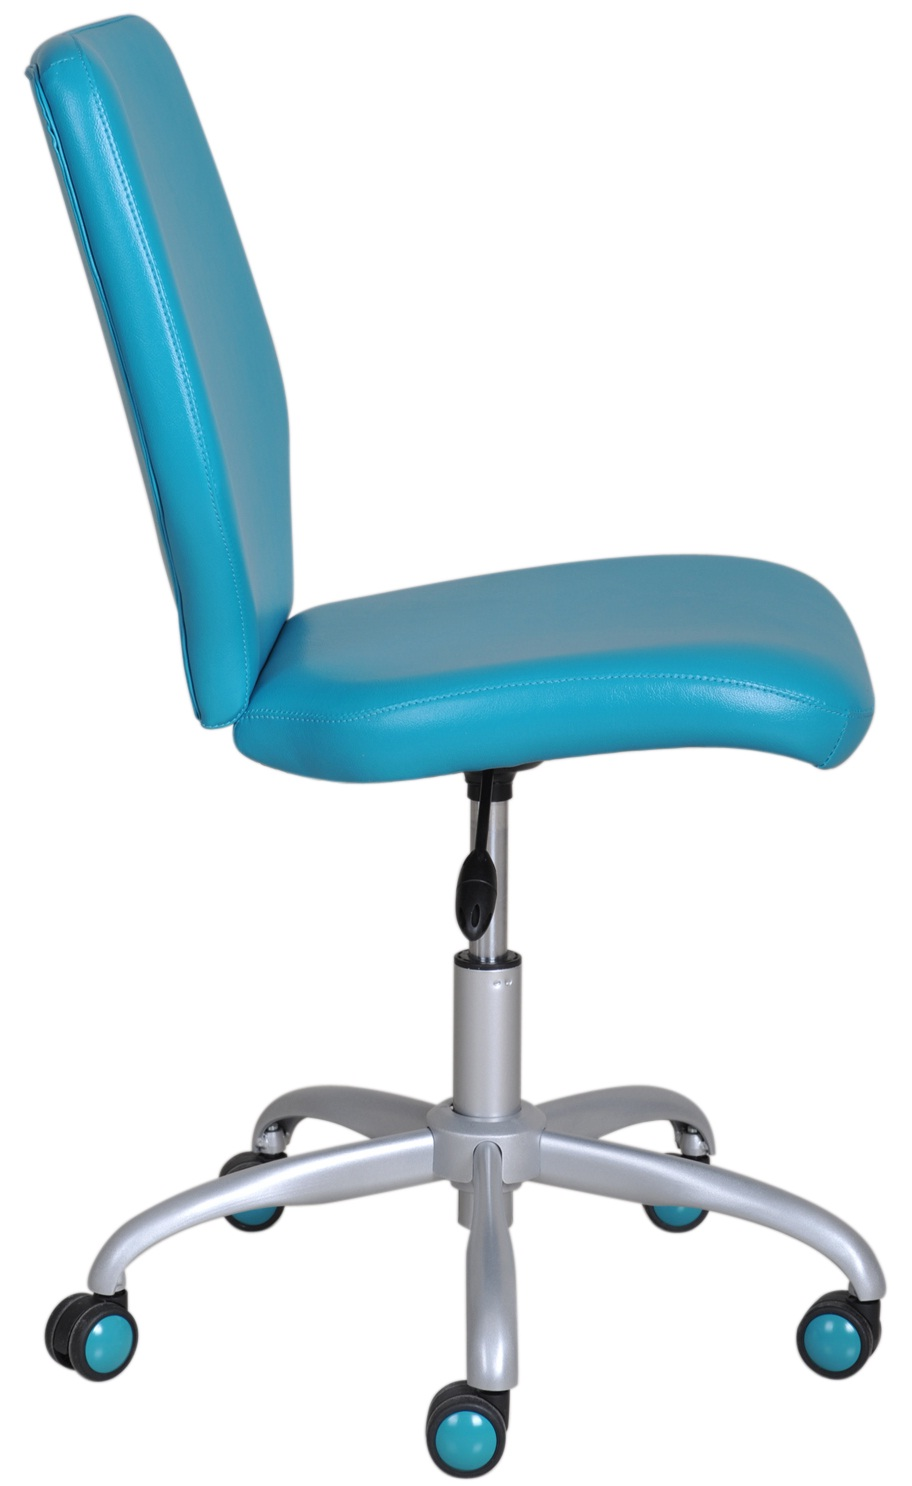 Mainstays Office Chair Multiple Colors Aqua Desk Chair